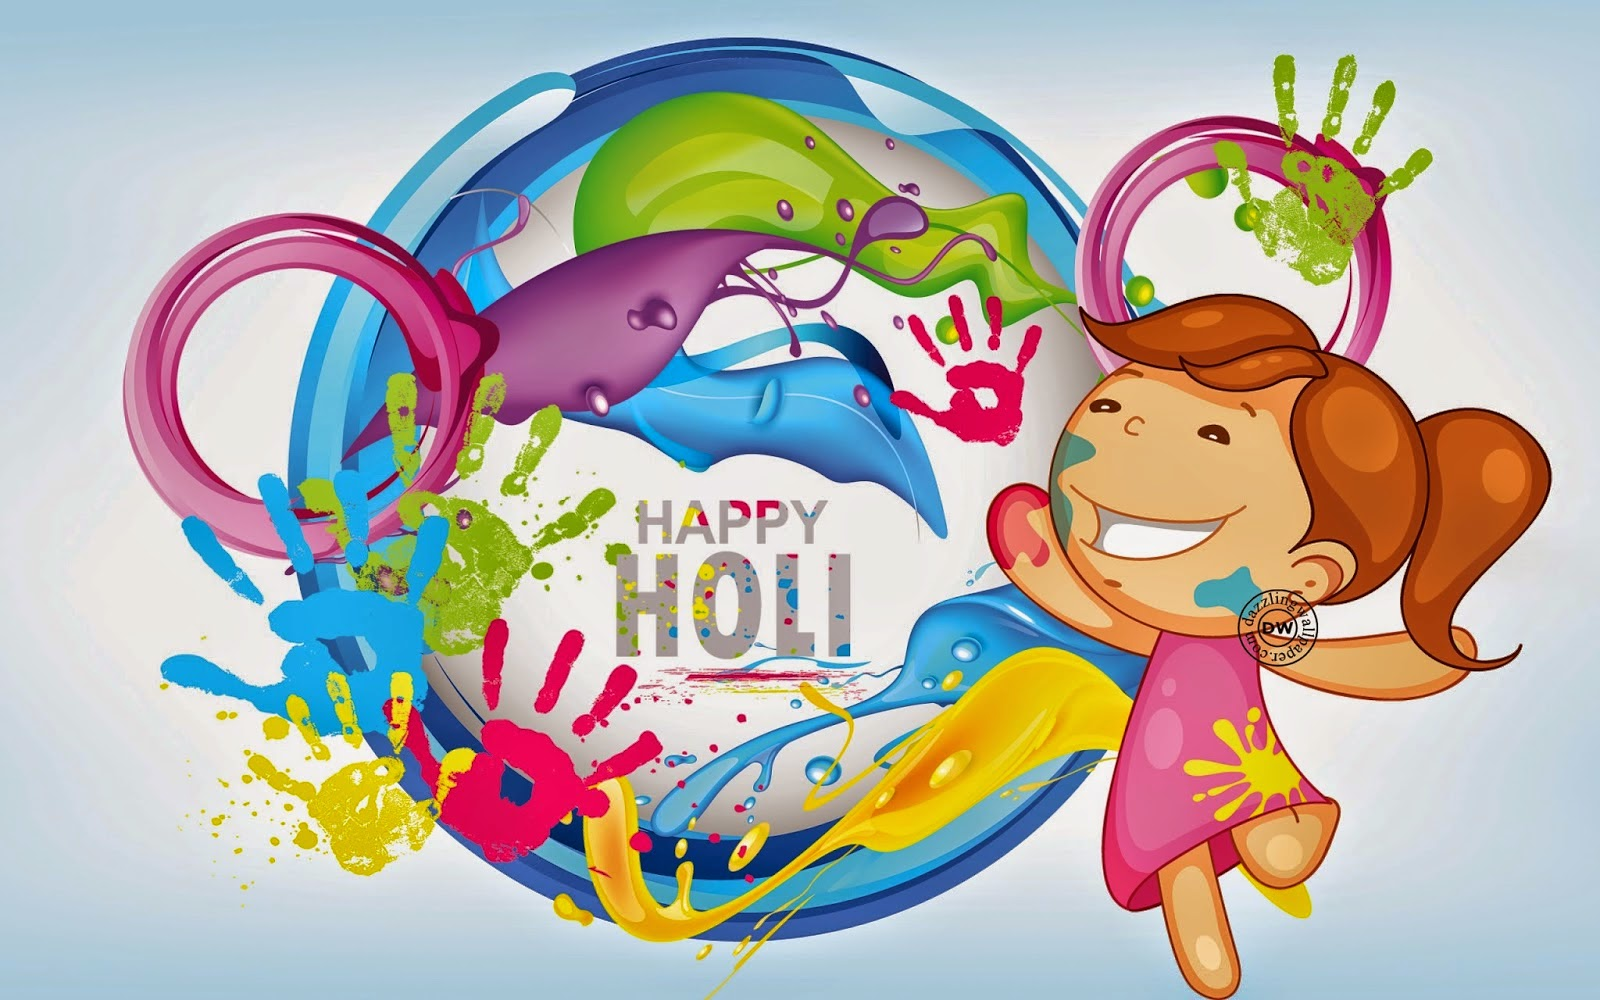 Happy holi 2015 wallpapers images greetings wishes sms quotes read and enjoy these holi 2015 quotes messages pictures for free and send it to your friends and family if you are looking for holi 2015 quotes and wishes m4hsunfo